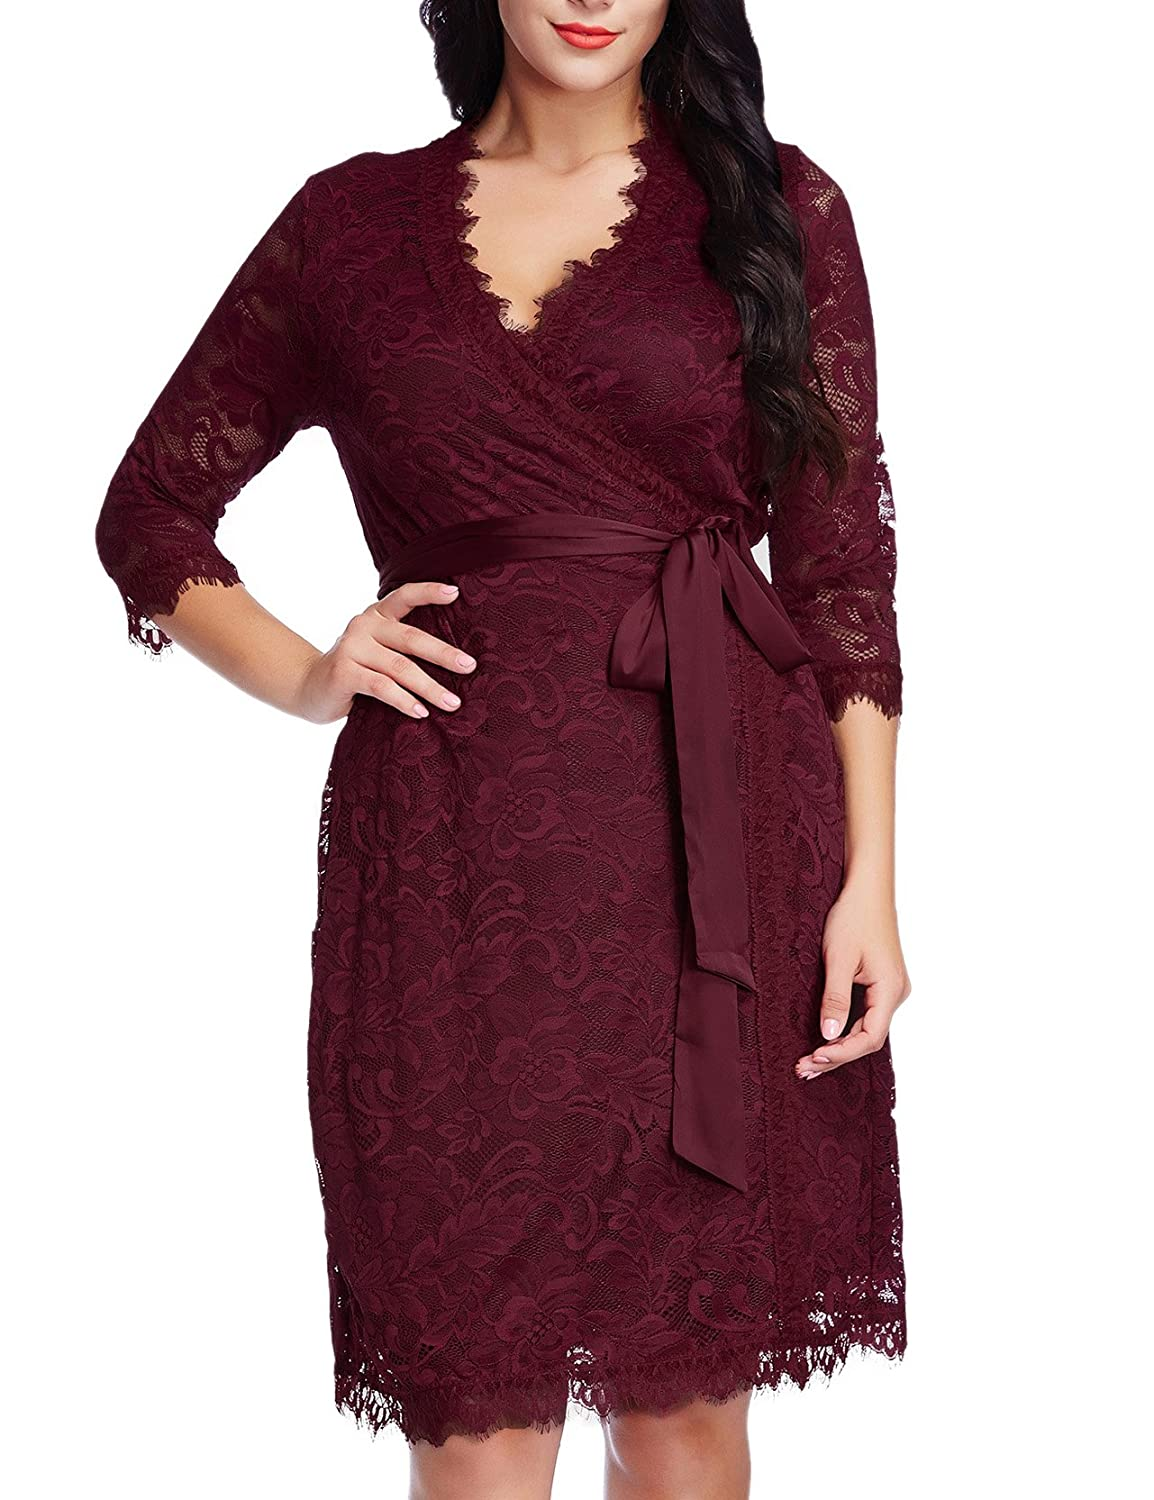 2a9d1966fb7c0 GRAPENT Womens Plus Size Red Floral Lace 3 4 Sleeves Formal True Wrap Dress  Cocktail 0X at Amazon Women s Clothing store